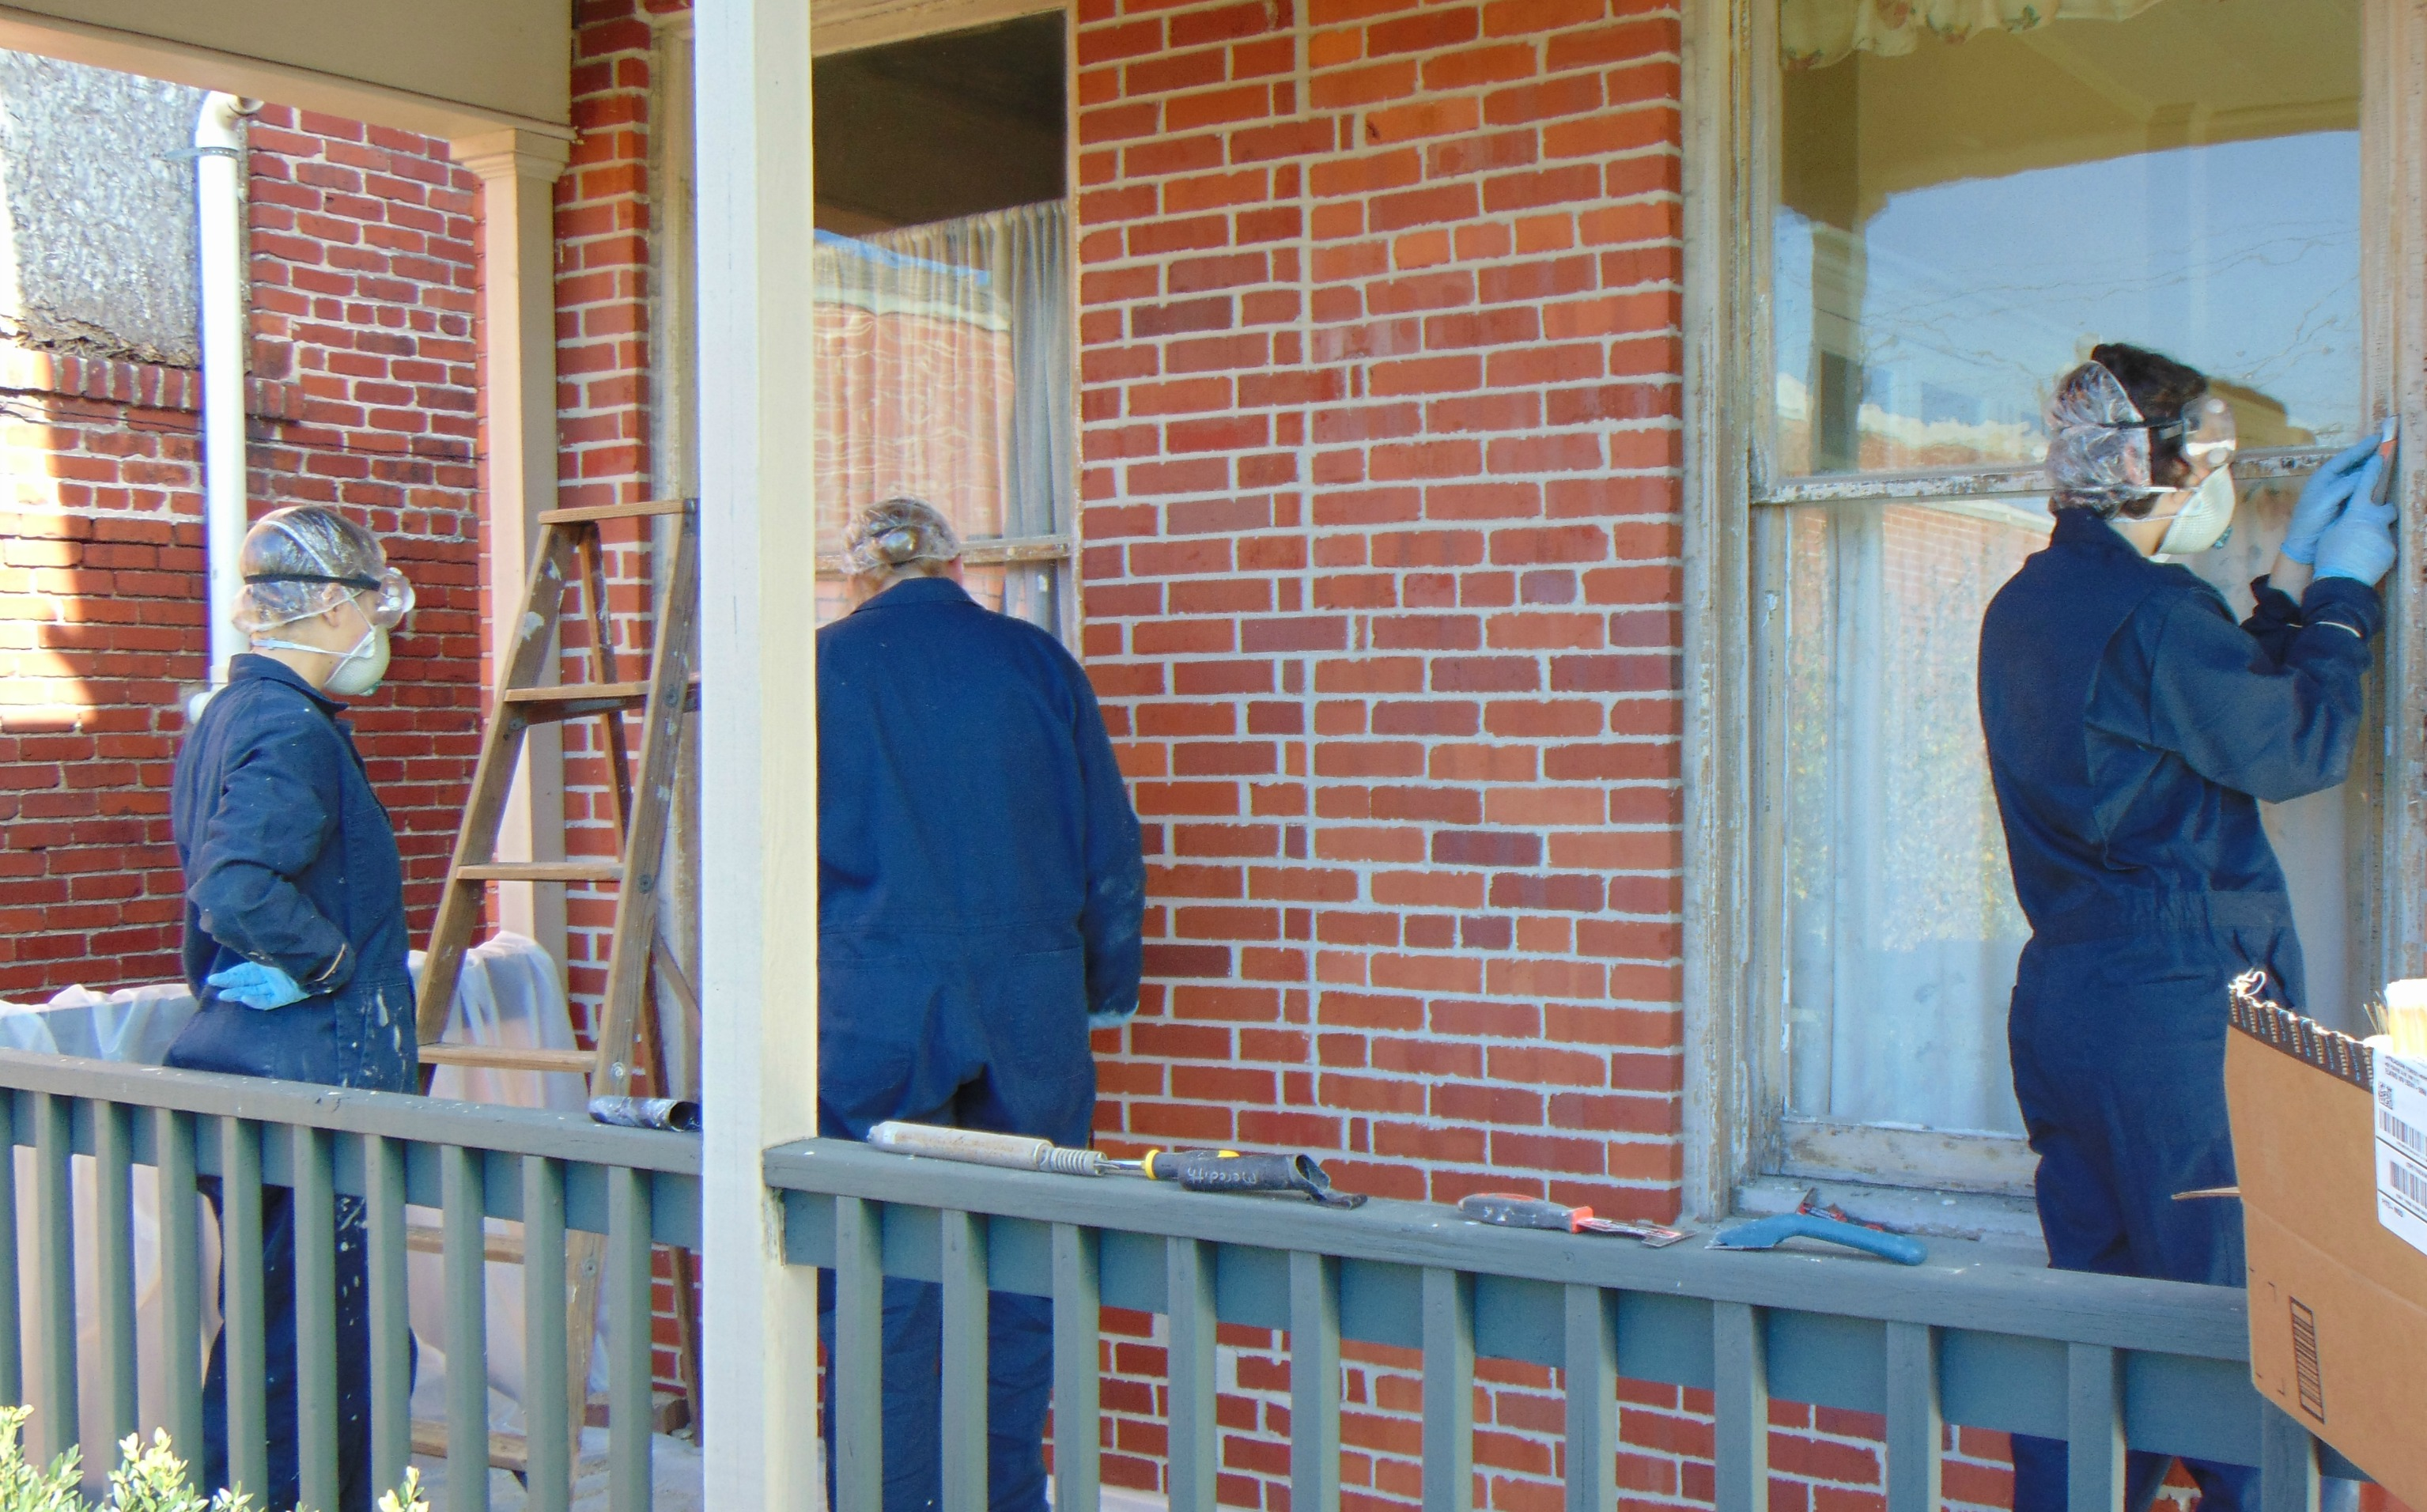 hands-on-team-working-to-reglaze-and-paint-windows-at-the-historic-darden-house-elkins-west-virginia